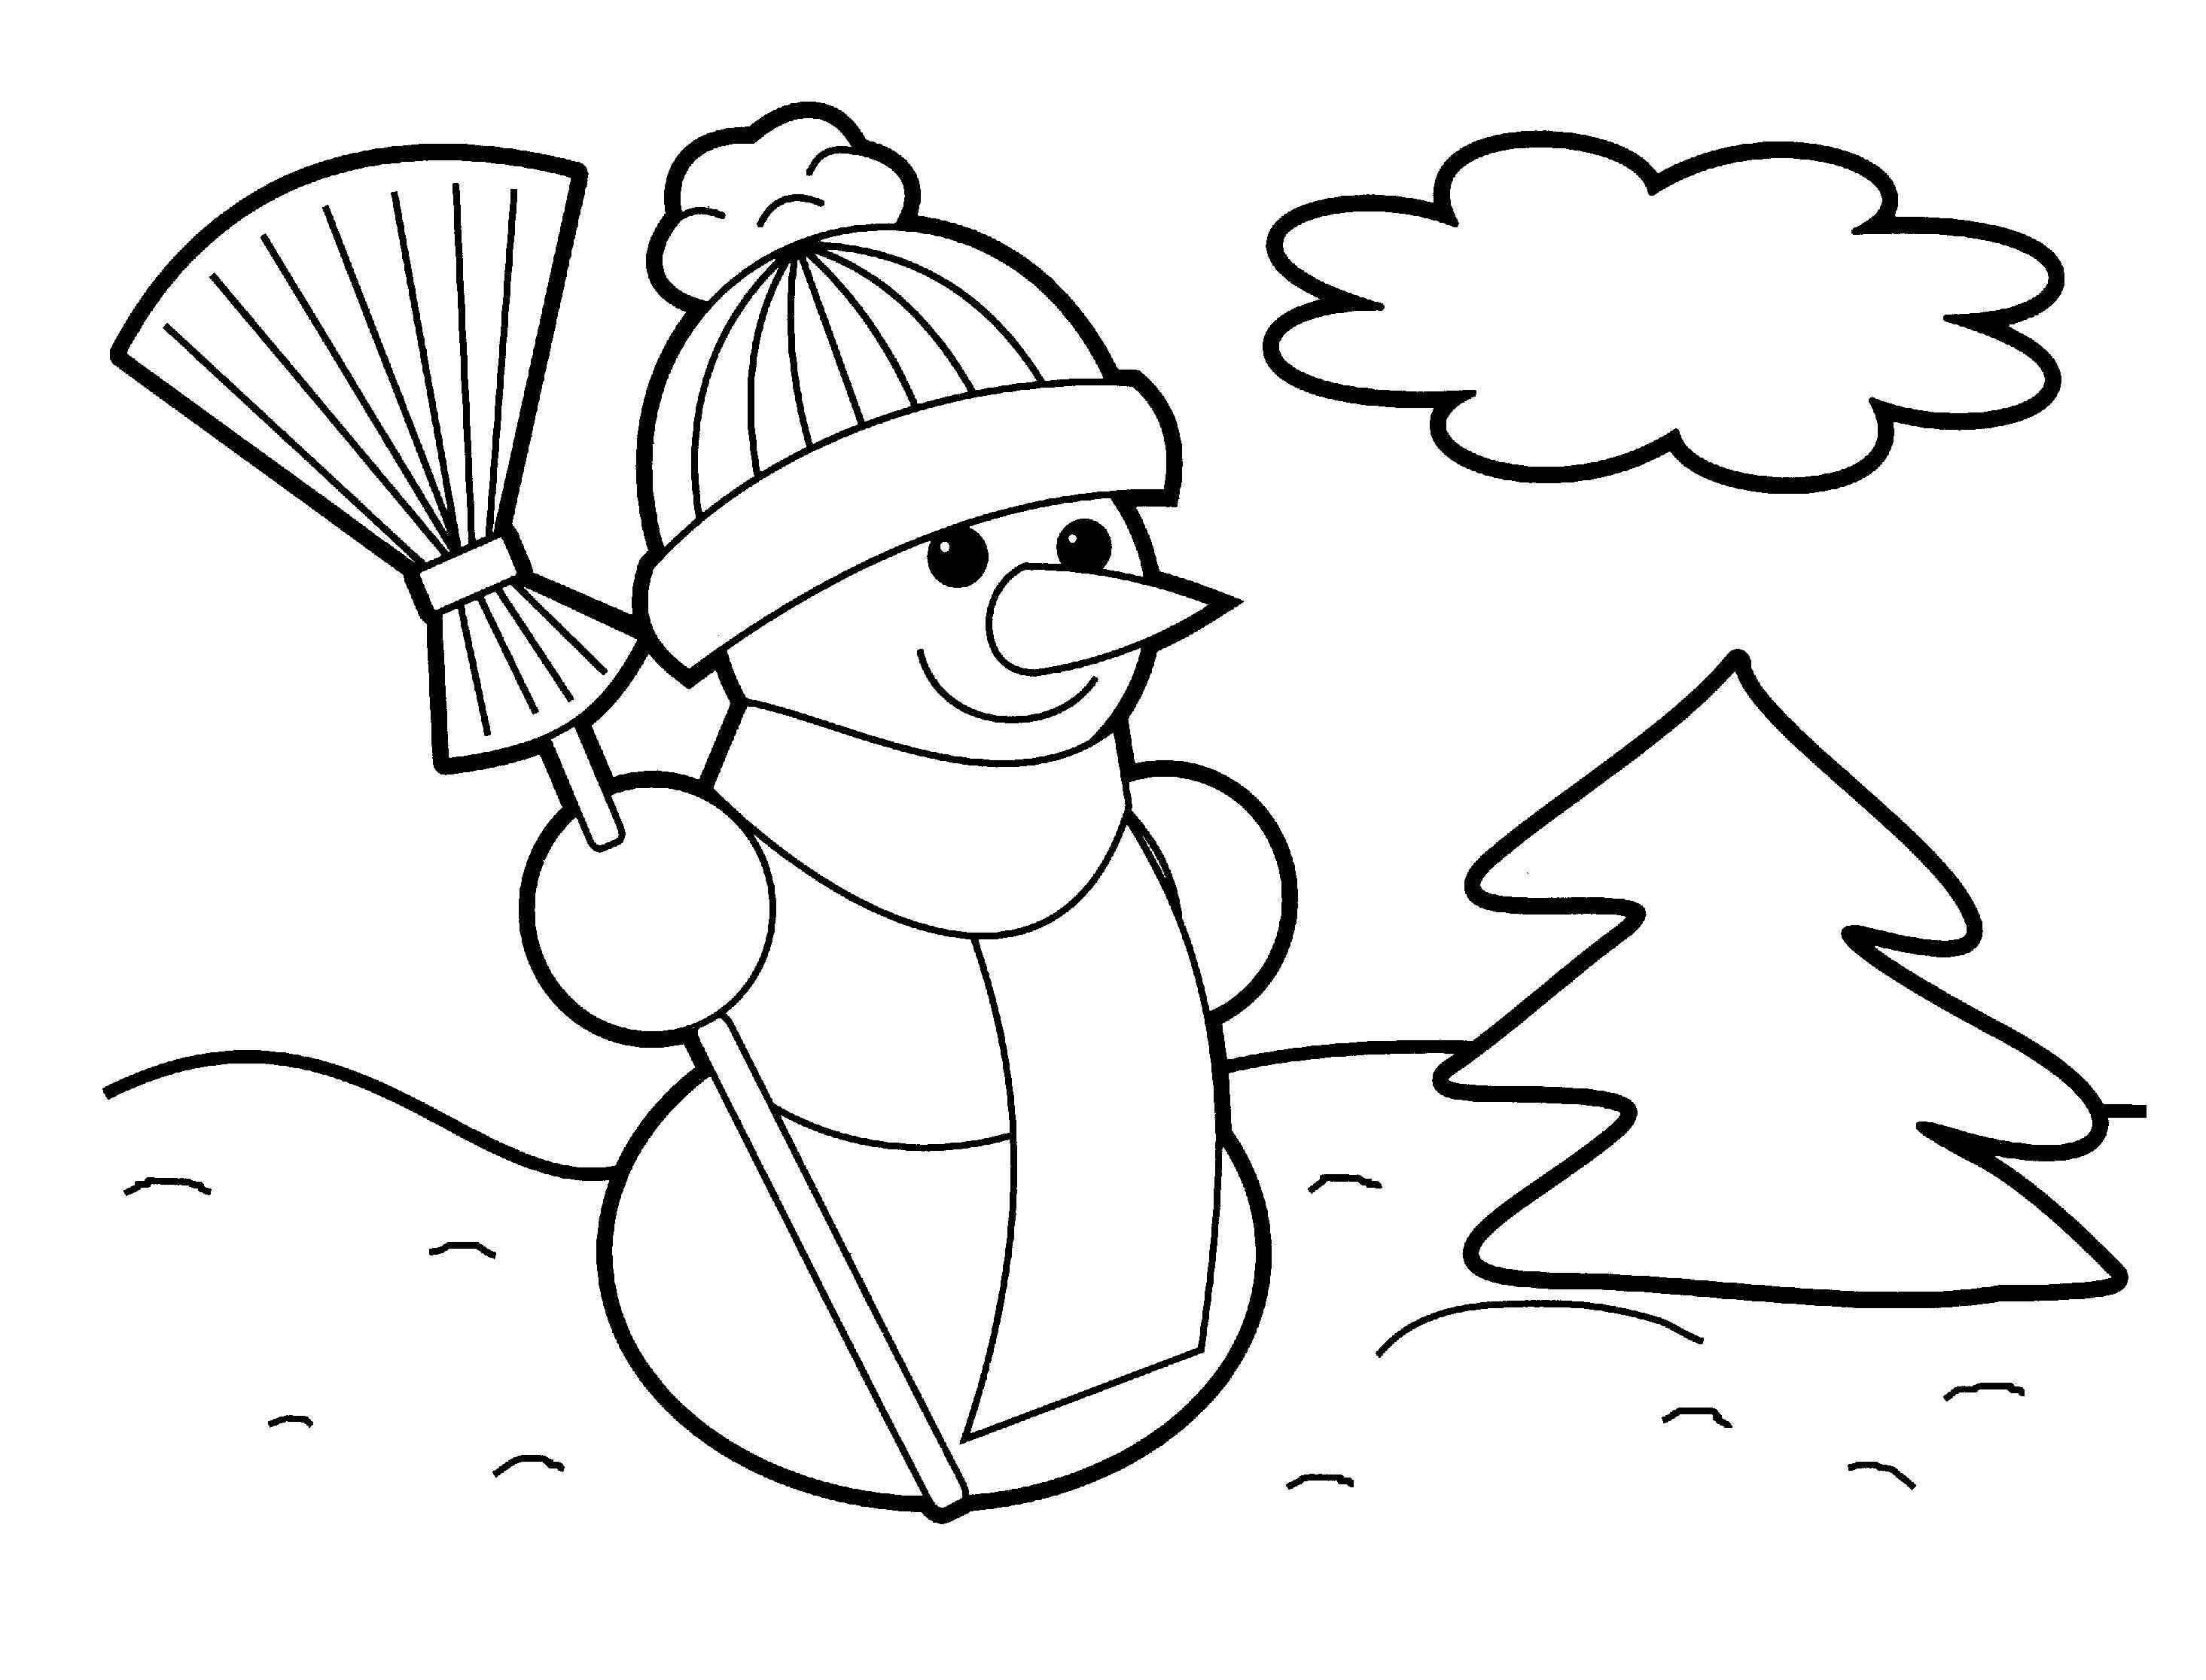 Barbie Superhero Coloring Pages  Collection 7d - Save it to your computer